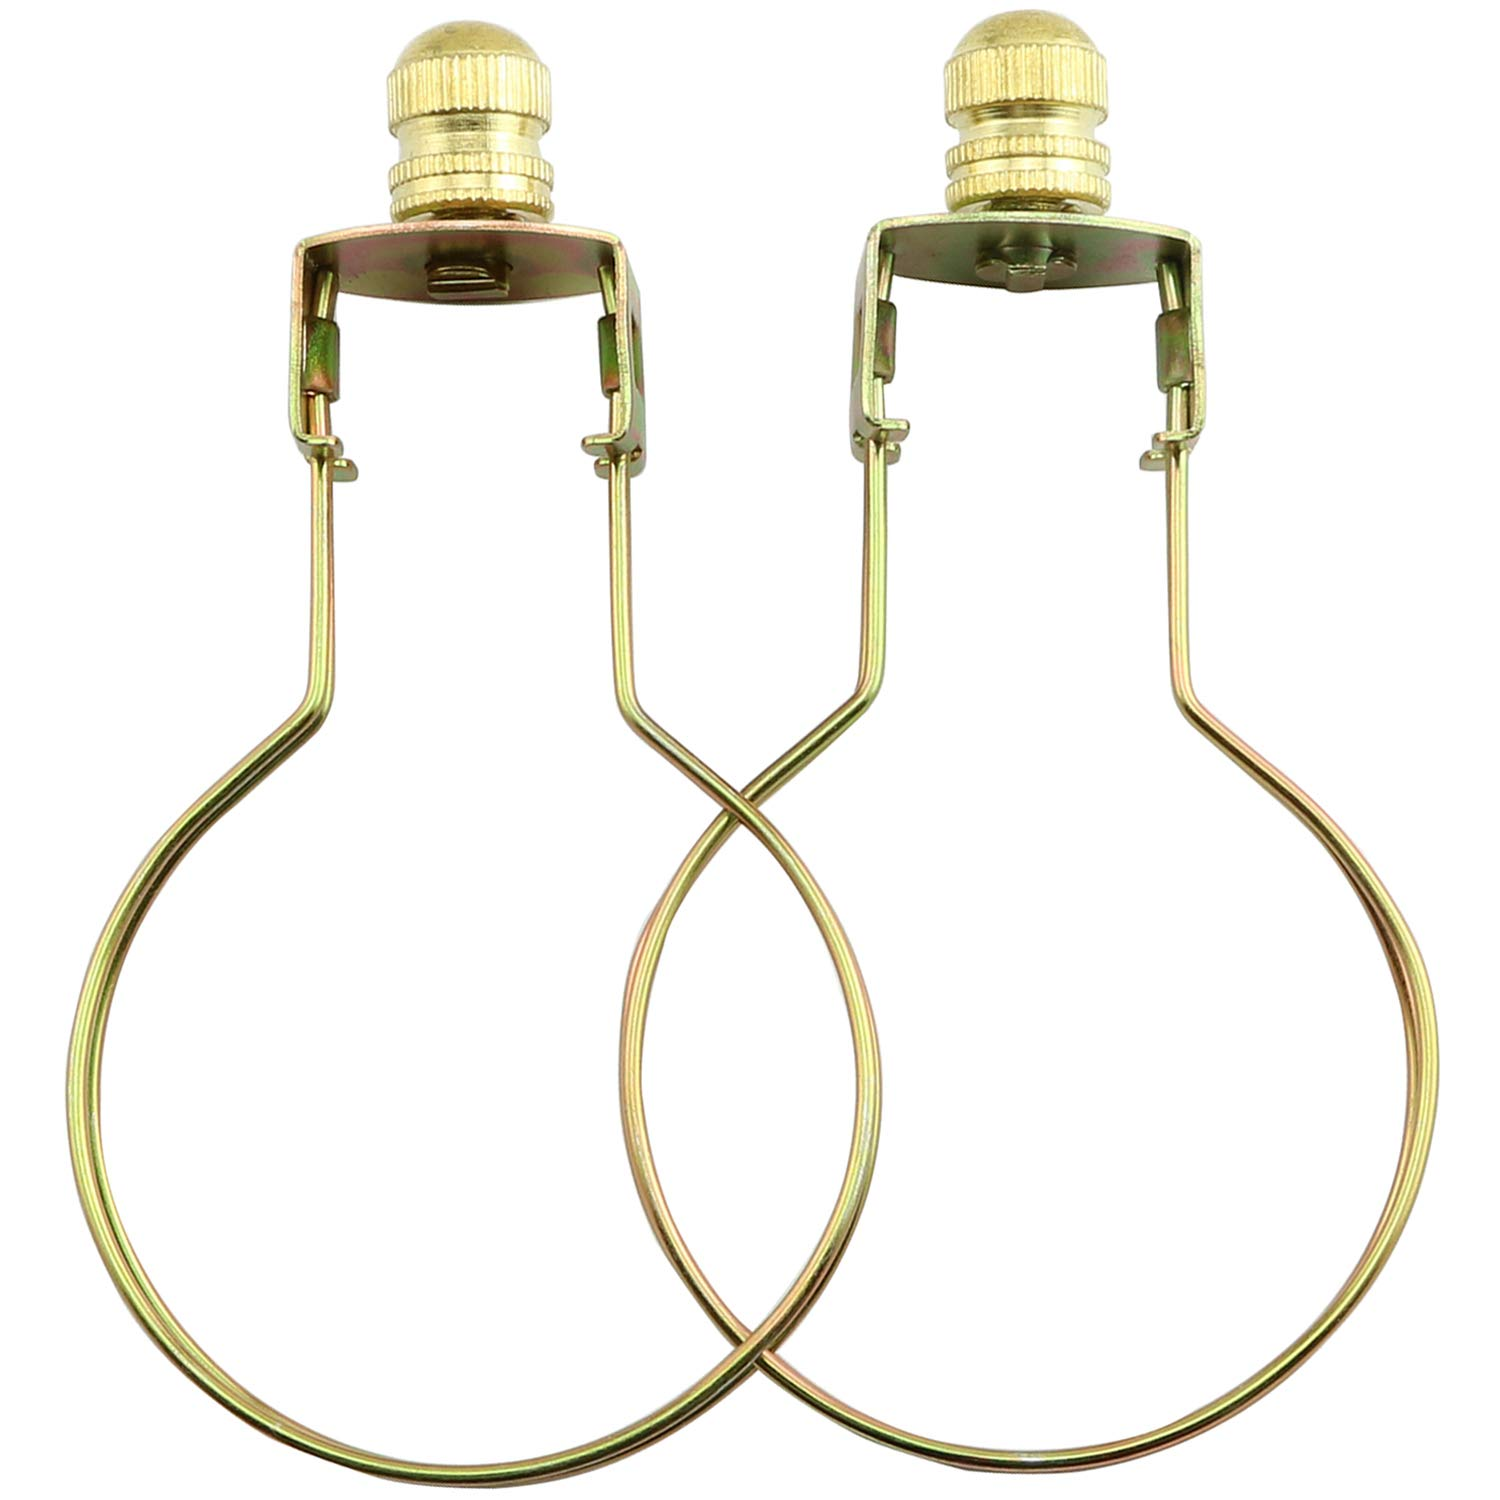 DZS Elec 1-Pack 55x90mm Gold Round Light Bulb Holder with Lamp Shade Attaching Finial DIY Lighting Accessories Clip On Lampshade Adapter